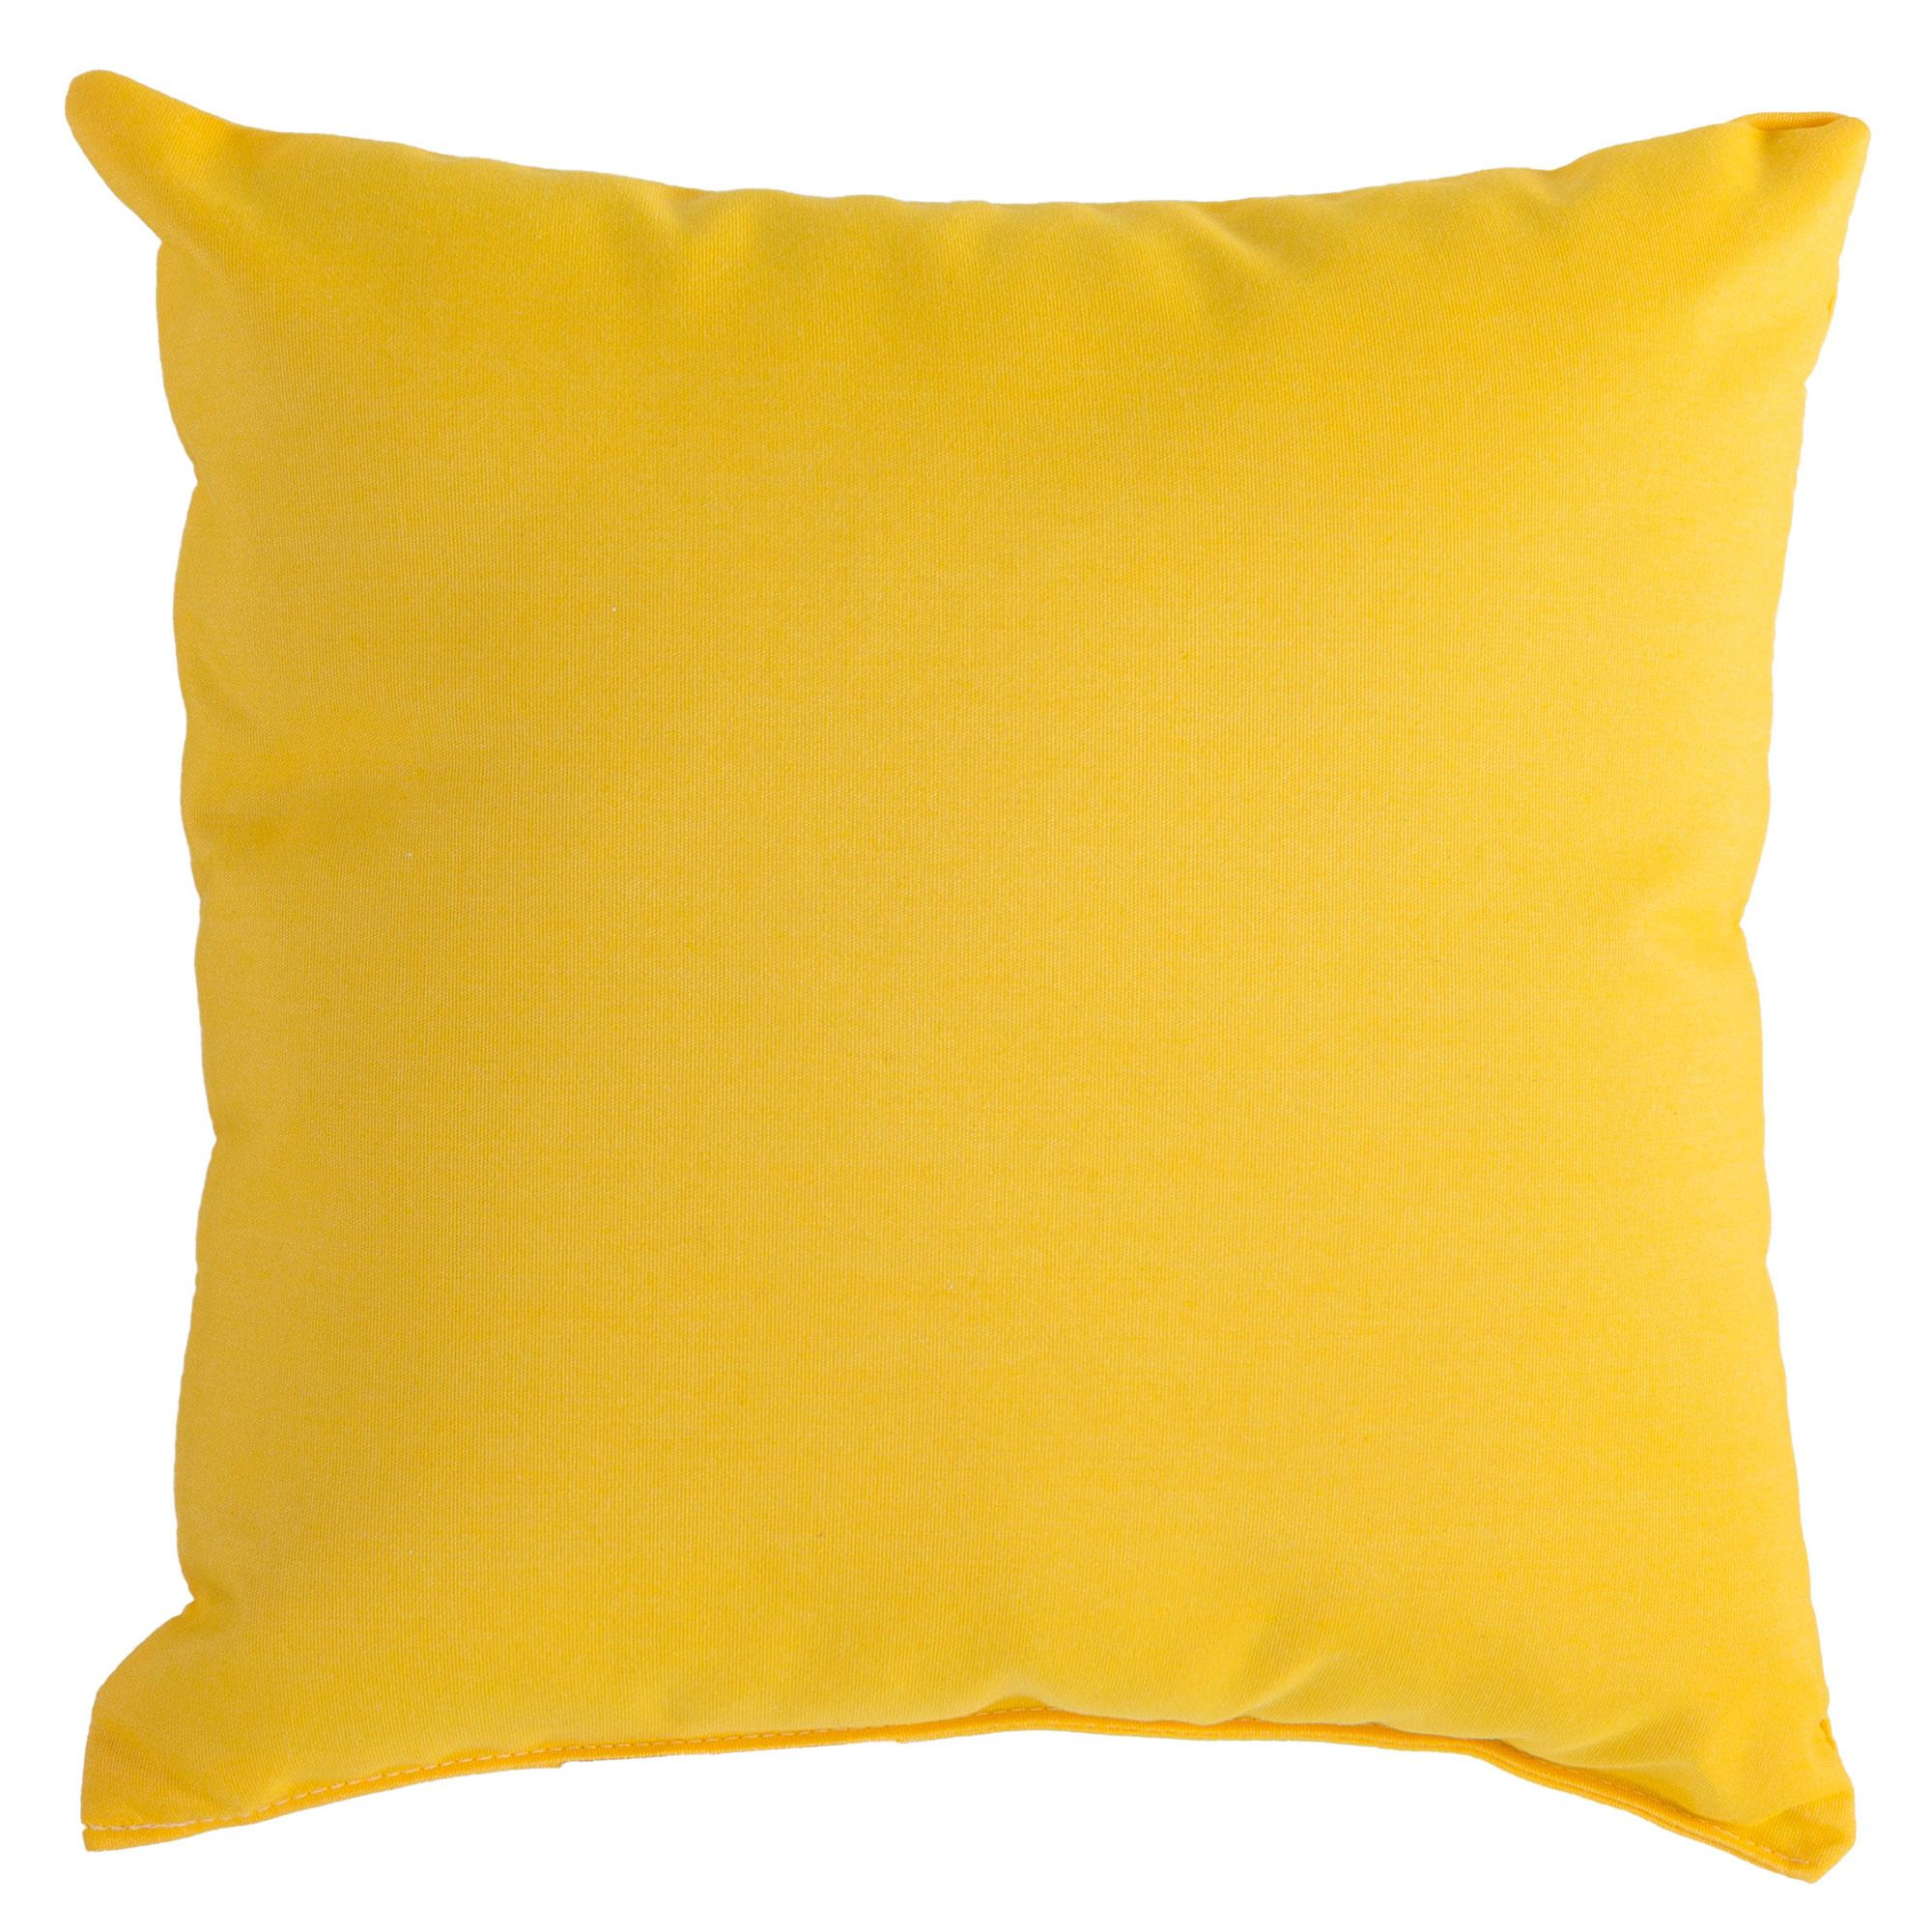 Sunbrella Throw Pillows Clearance : Sunflower Yellow Sunbrella Outdoor Throw Pillow DFOHome